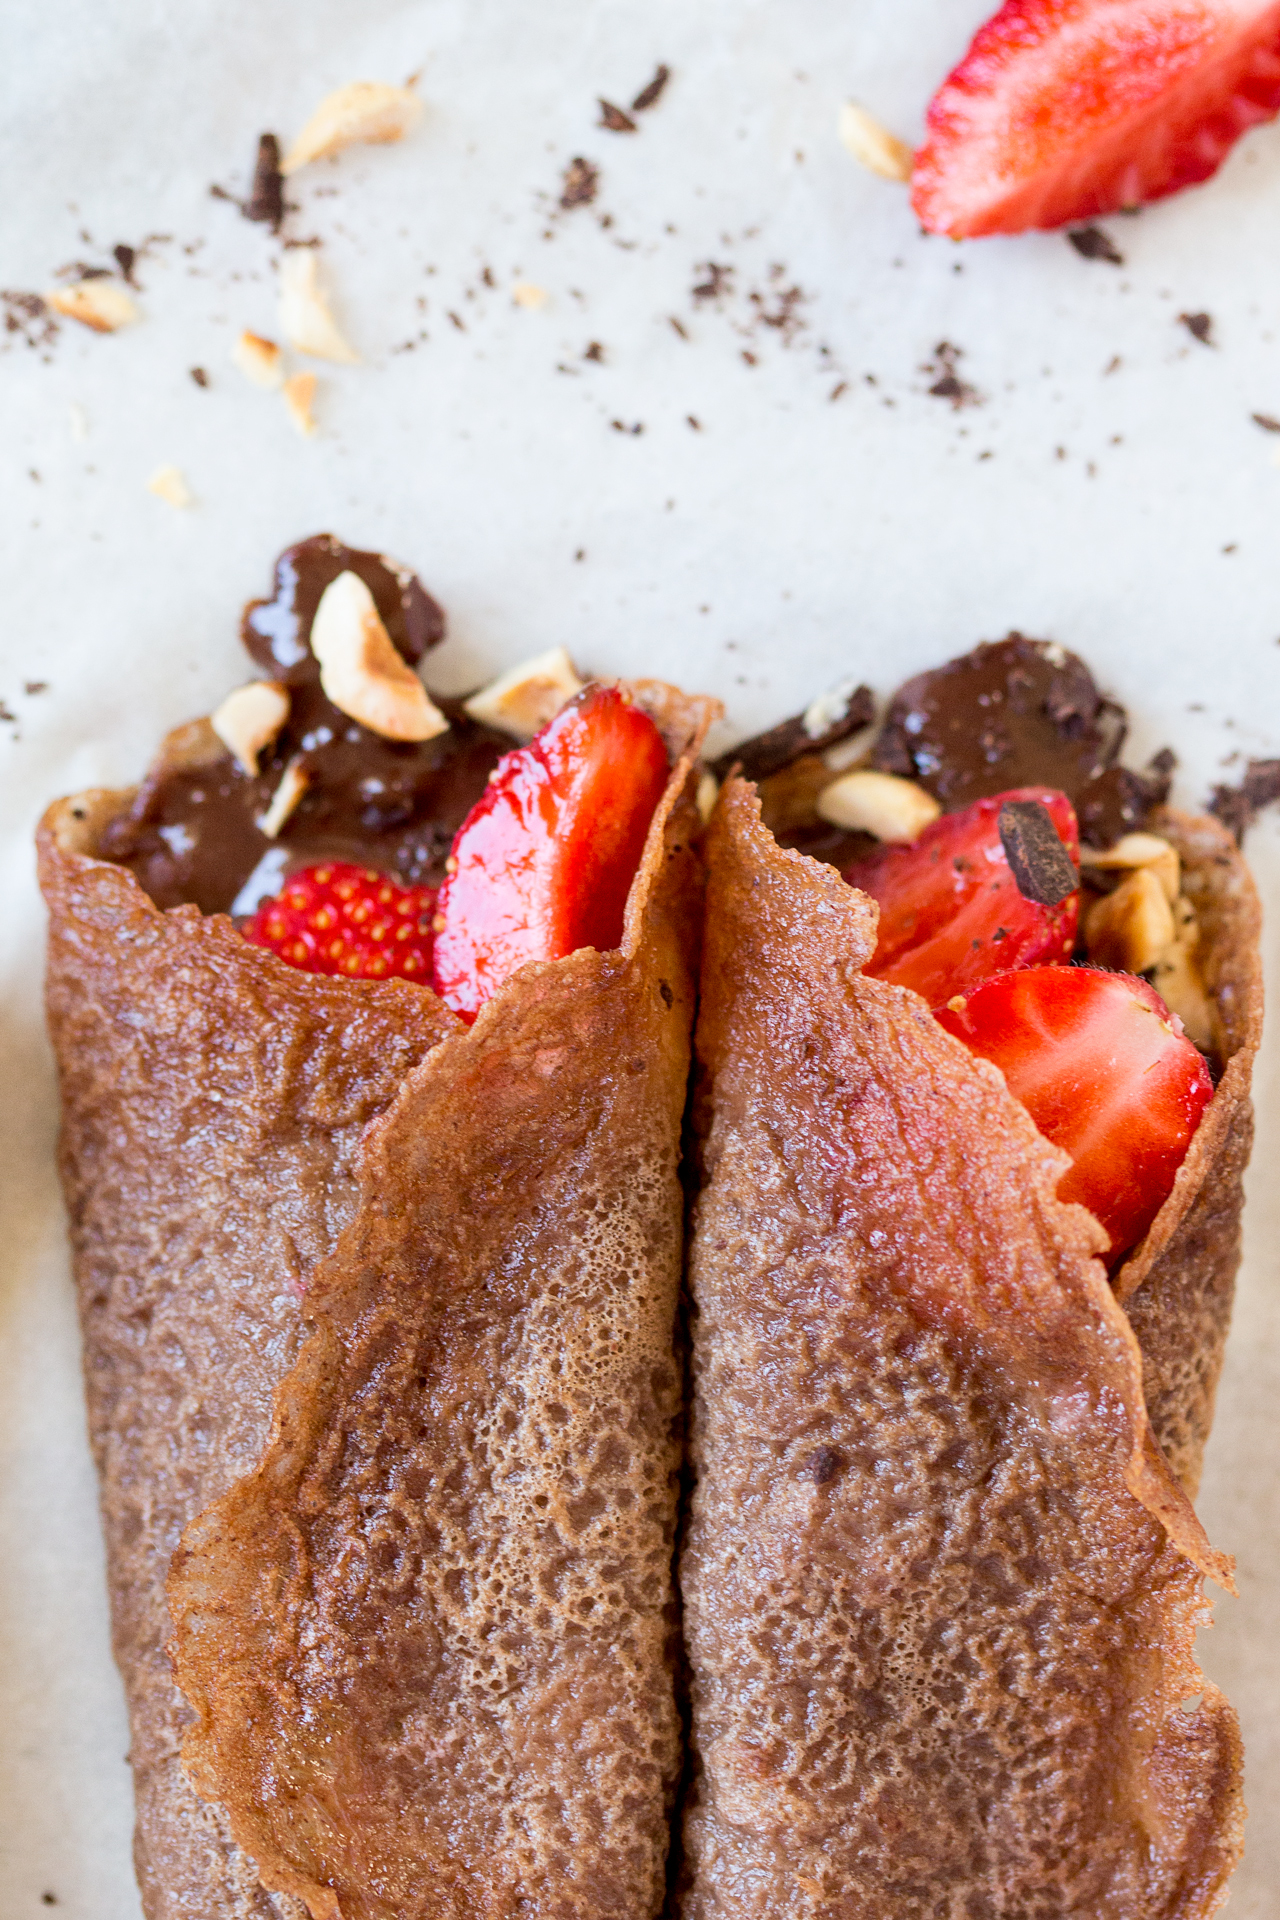 vegan chocolate crepes with strawberries portion